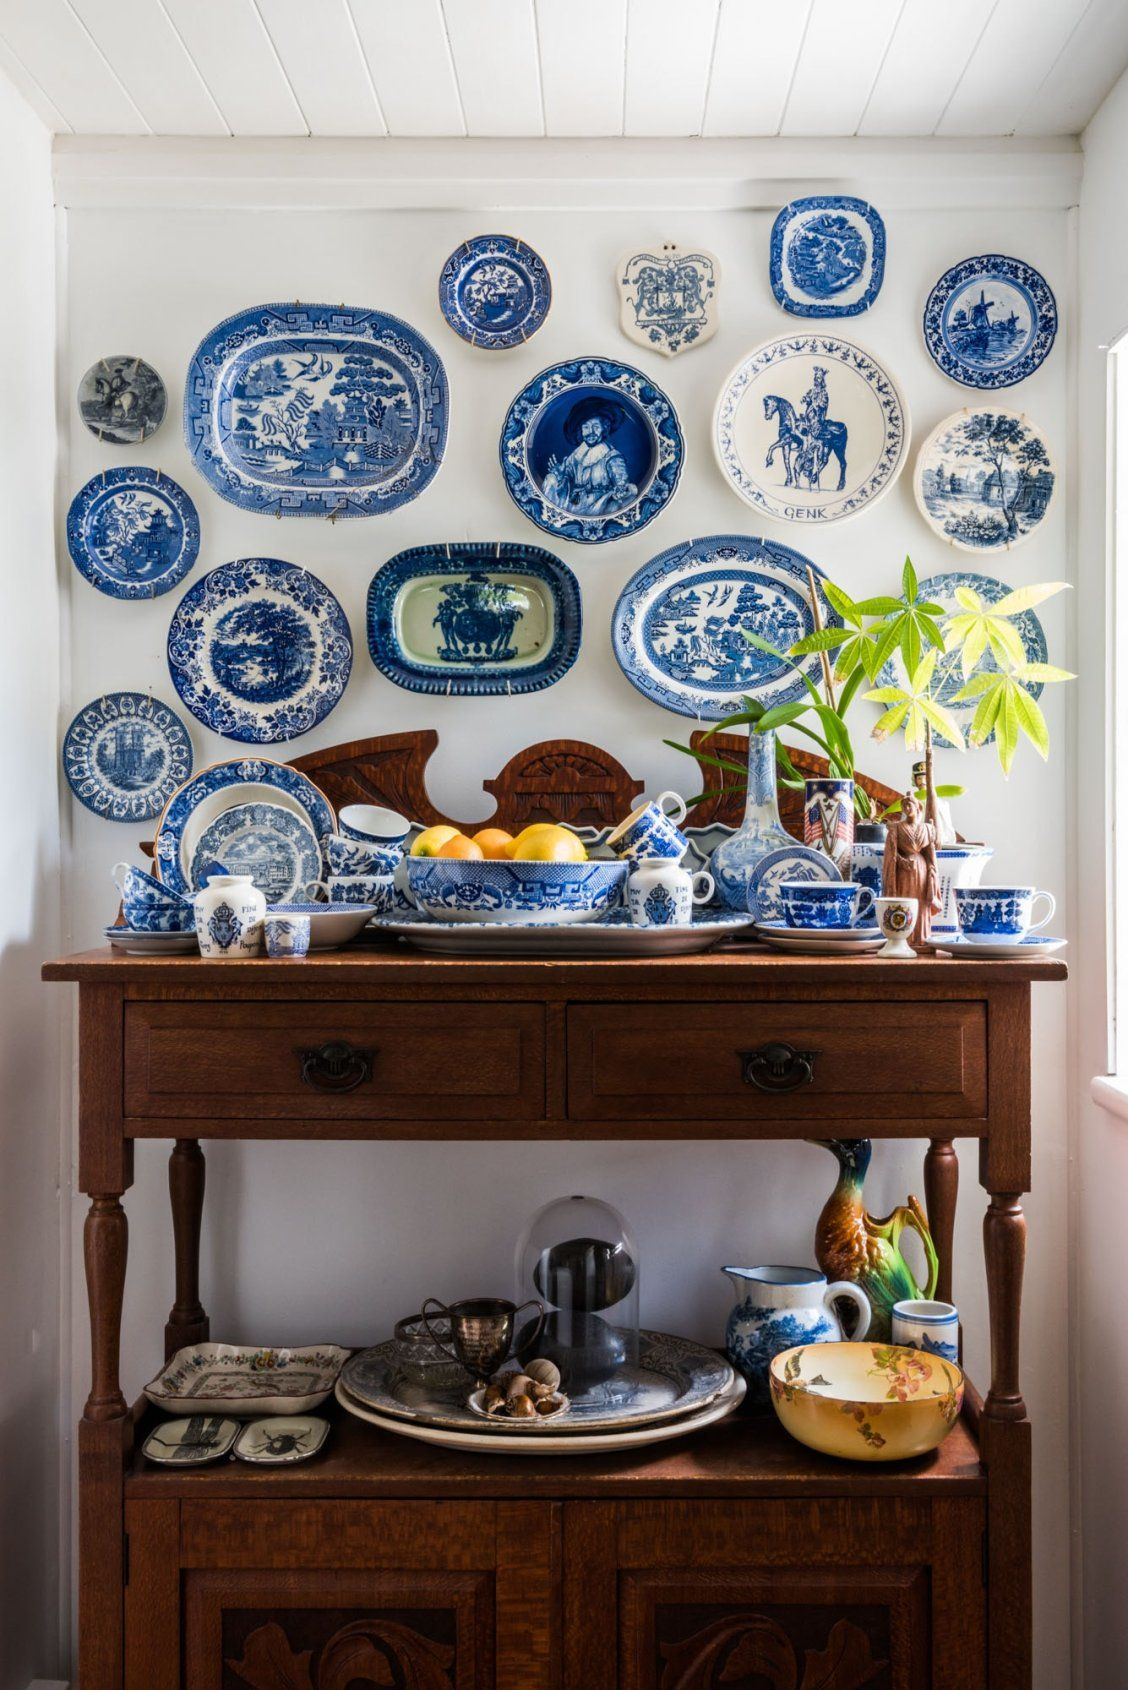 Calling All Collectibles Inspiring Ways To Display Your Treasures Plates On Wall Blue White Decor Plate